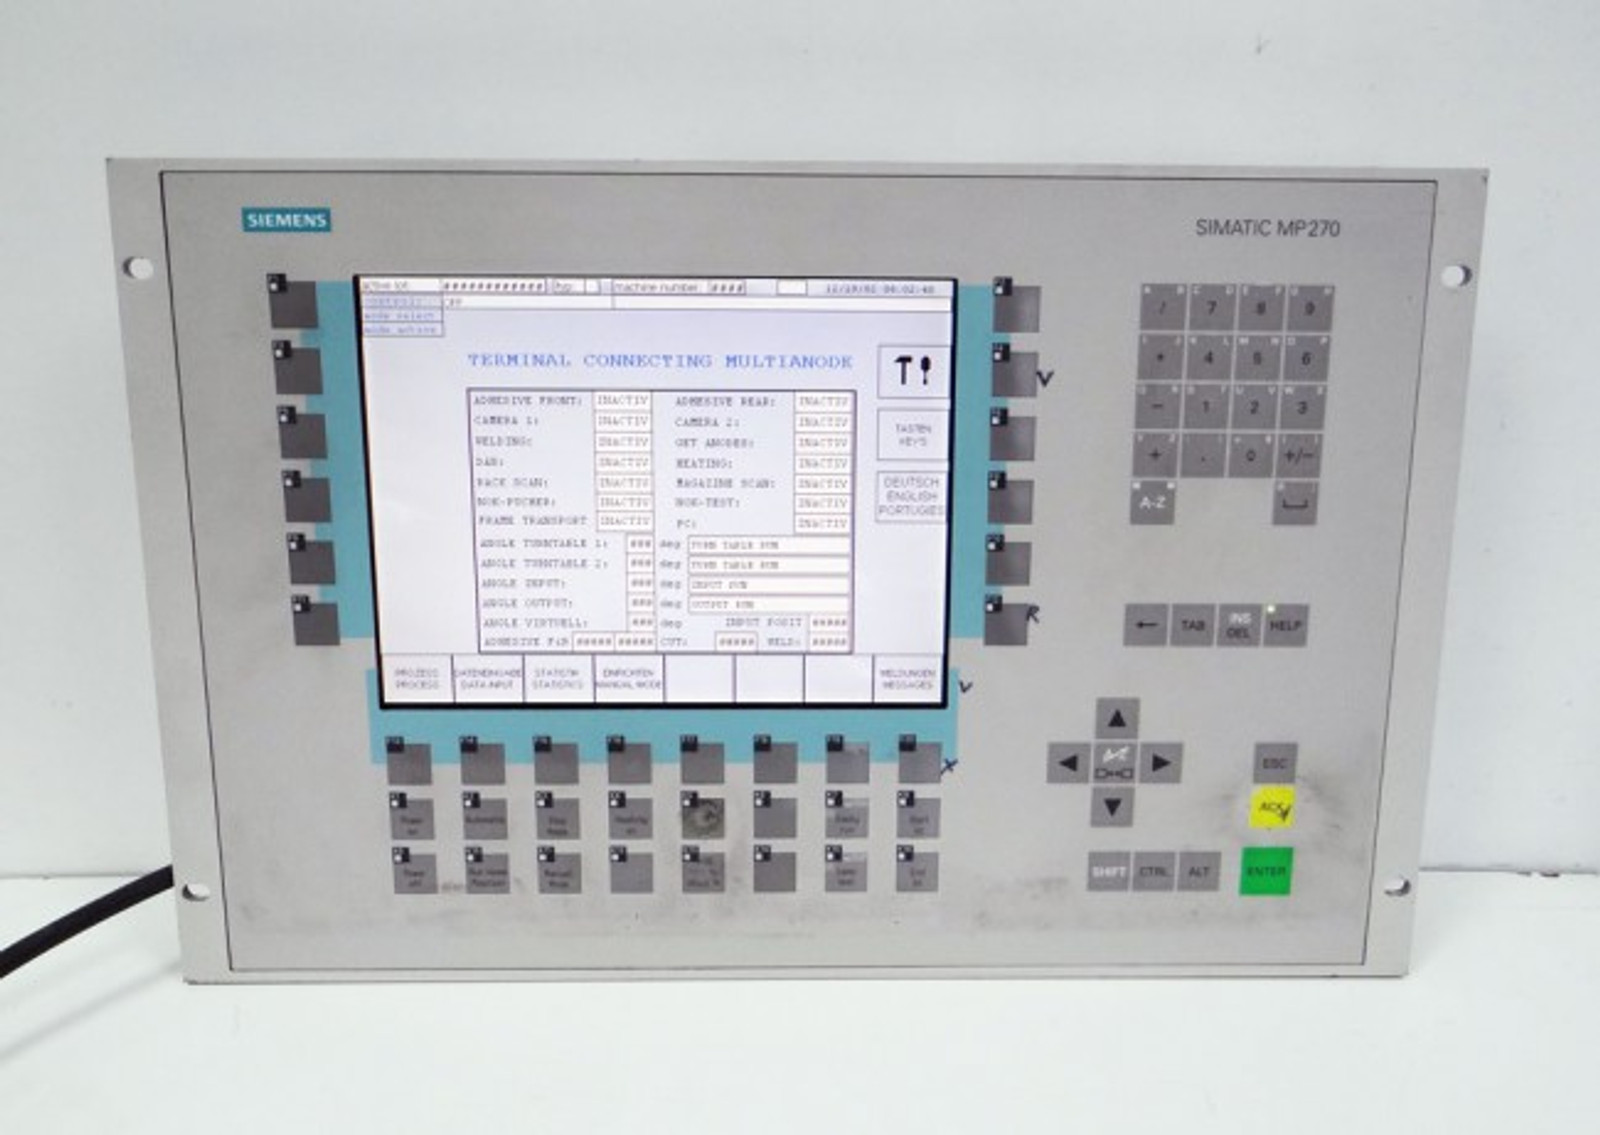 Siemens MULTI PANEL 6AV6542-0AD15-2AX0  6AV6 542-0AD15-2AX0 E:8 MP270 TFT